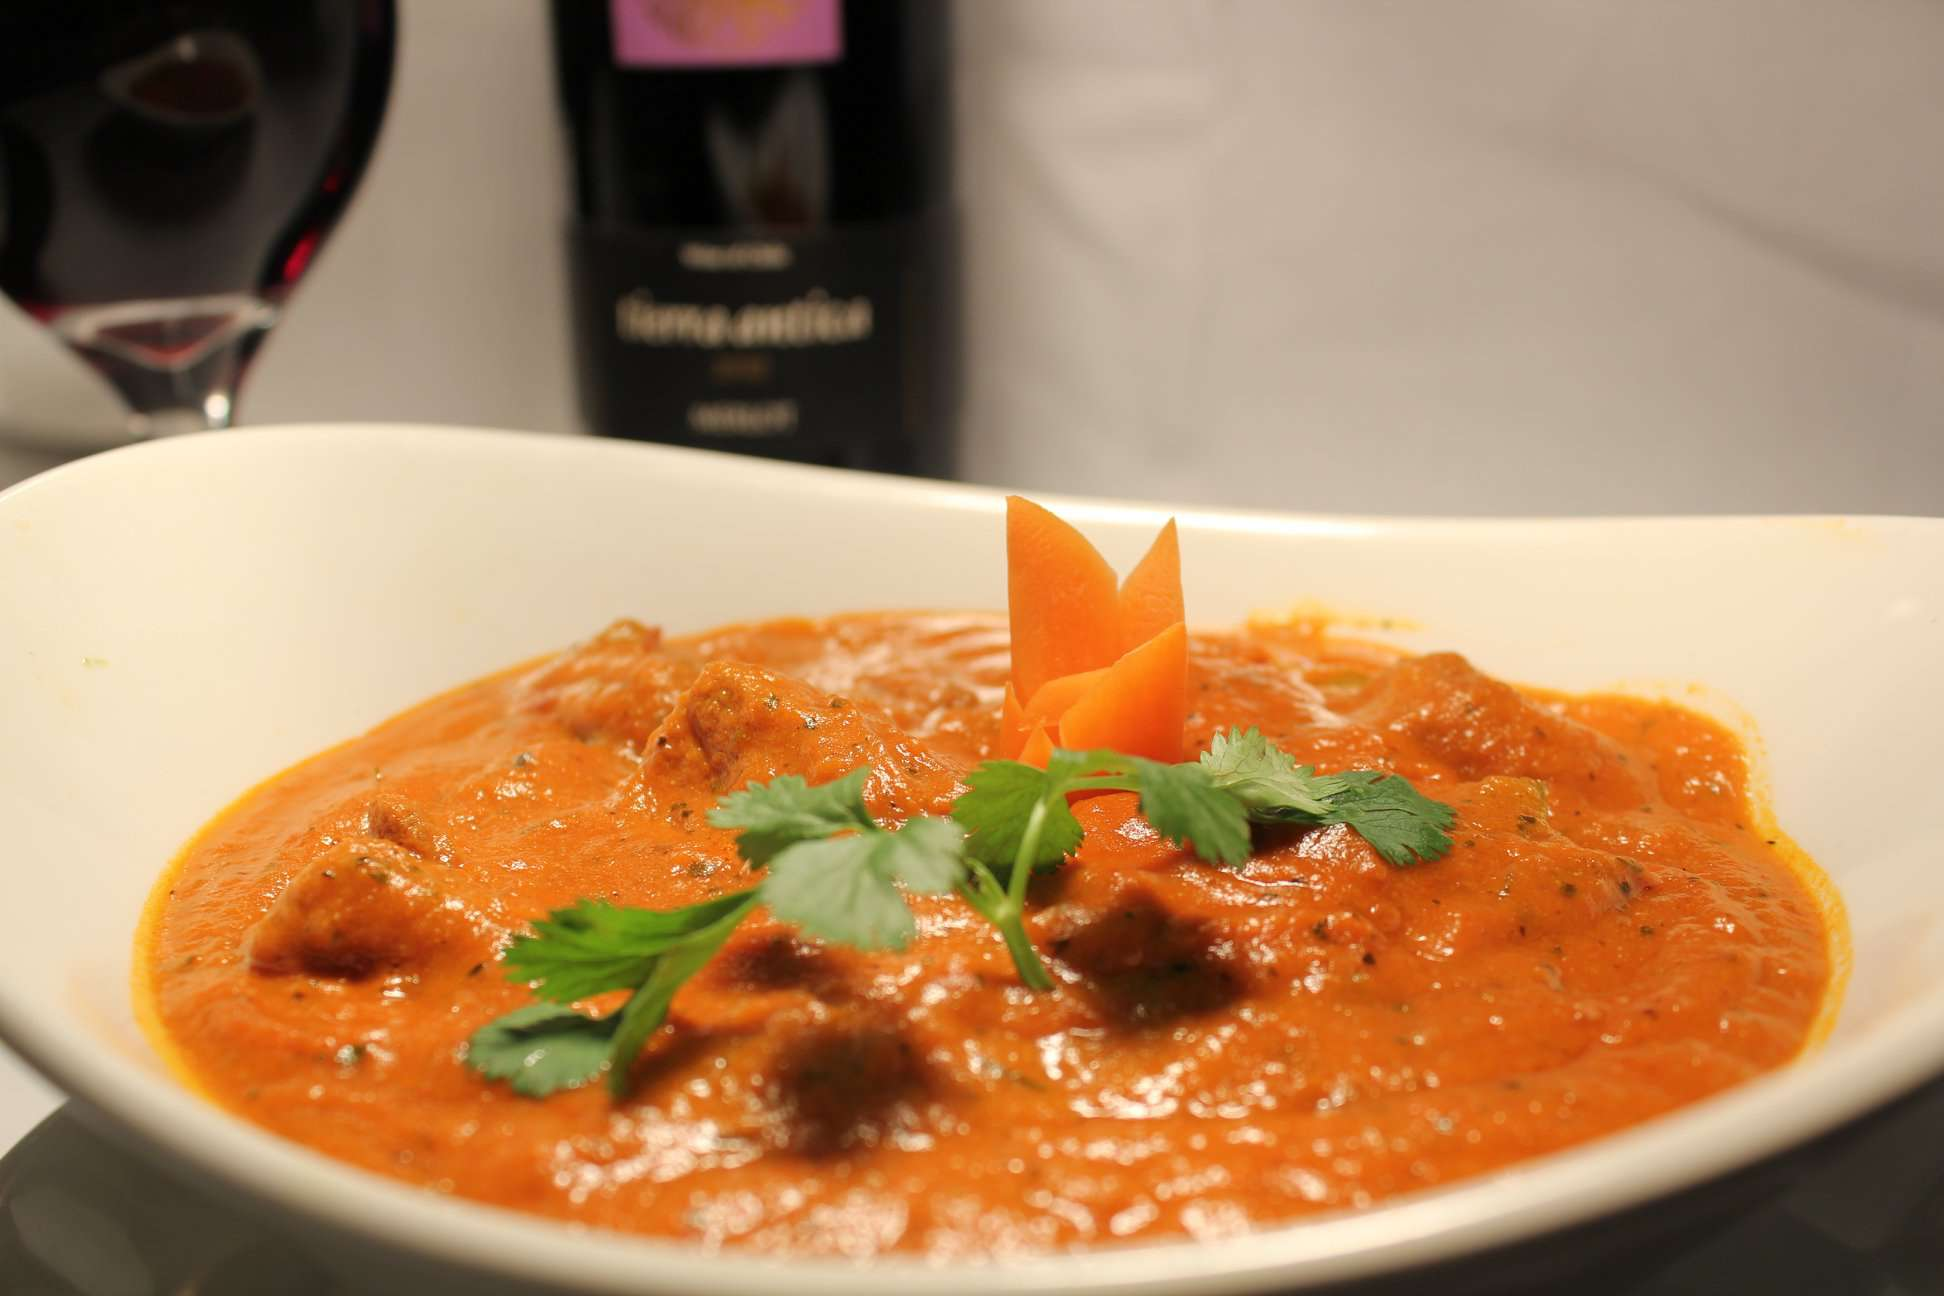 Red curry in a white boy with a sprig of fresh coriander